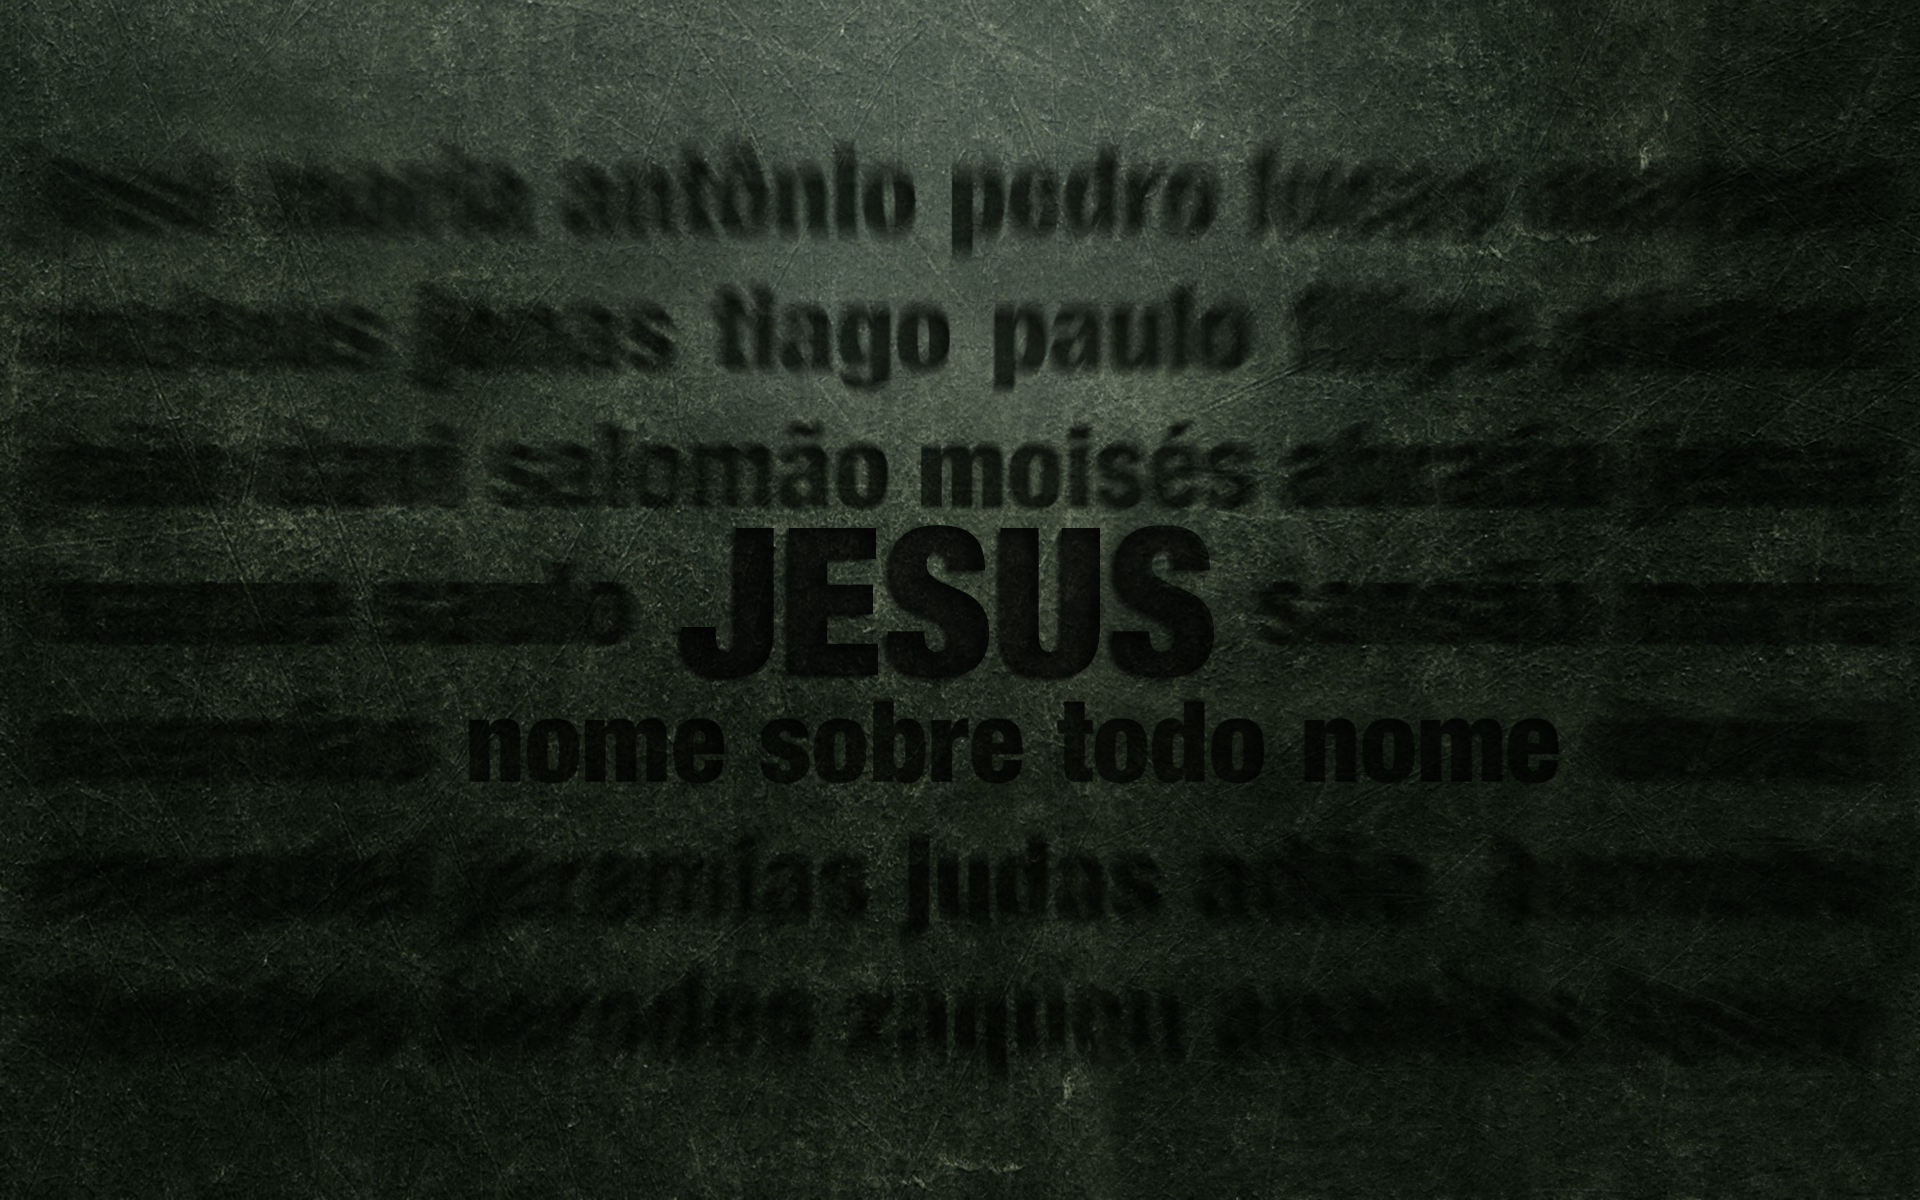 Jesus Name Wallpaper Hd O Nome Wallpapers Crist 227 Os